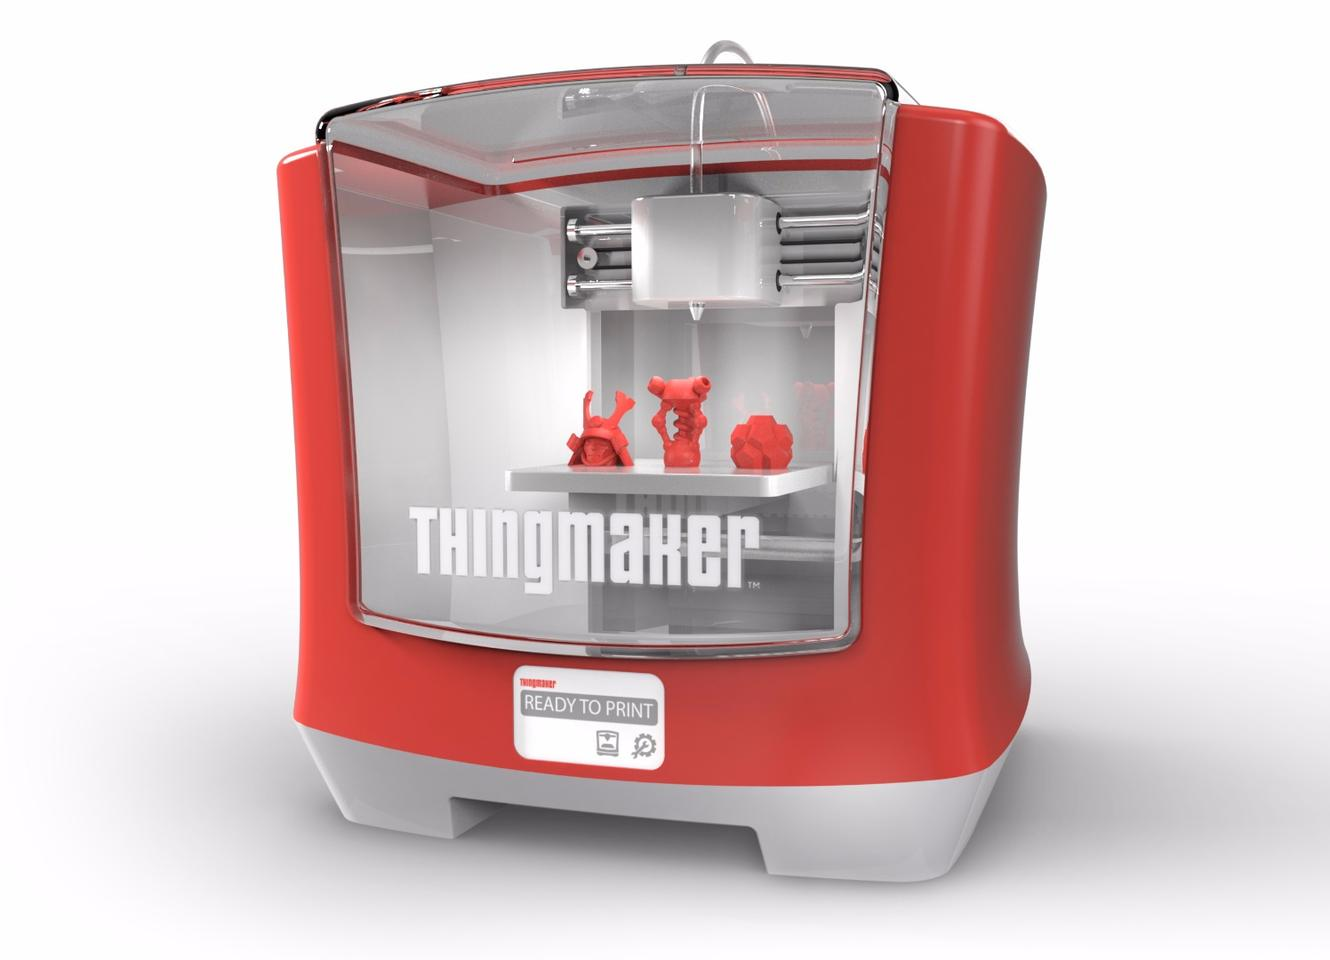 Mattel has announced it's bringing back the iconic ThingMaker as a 3D printer for children